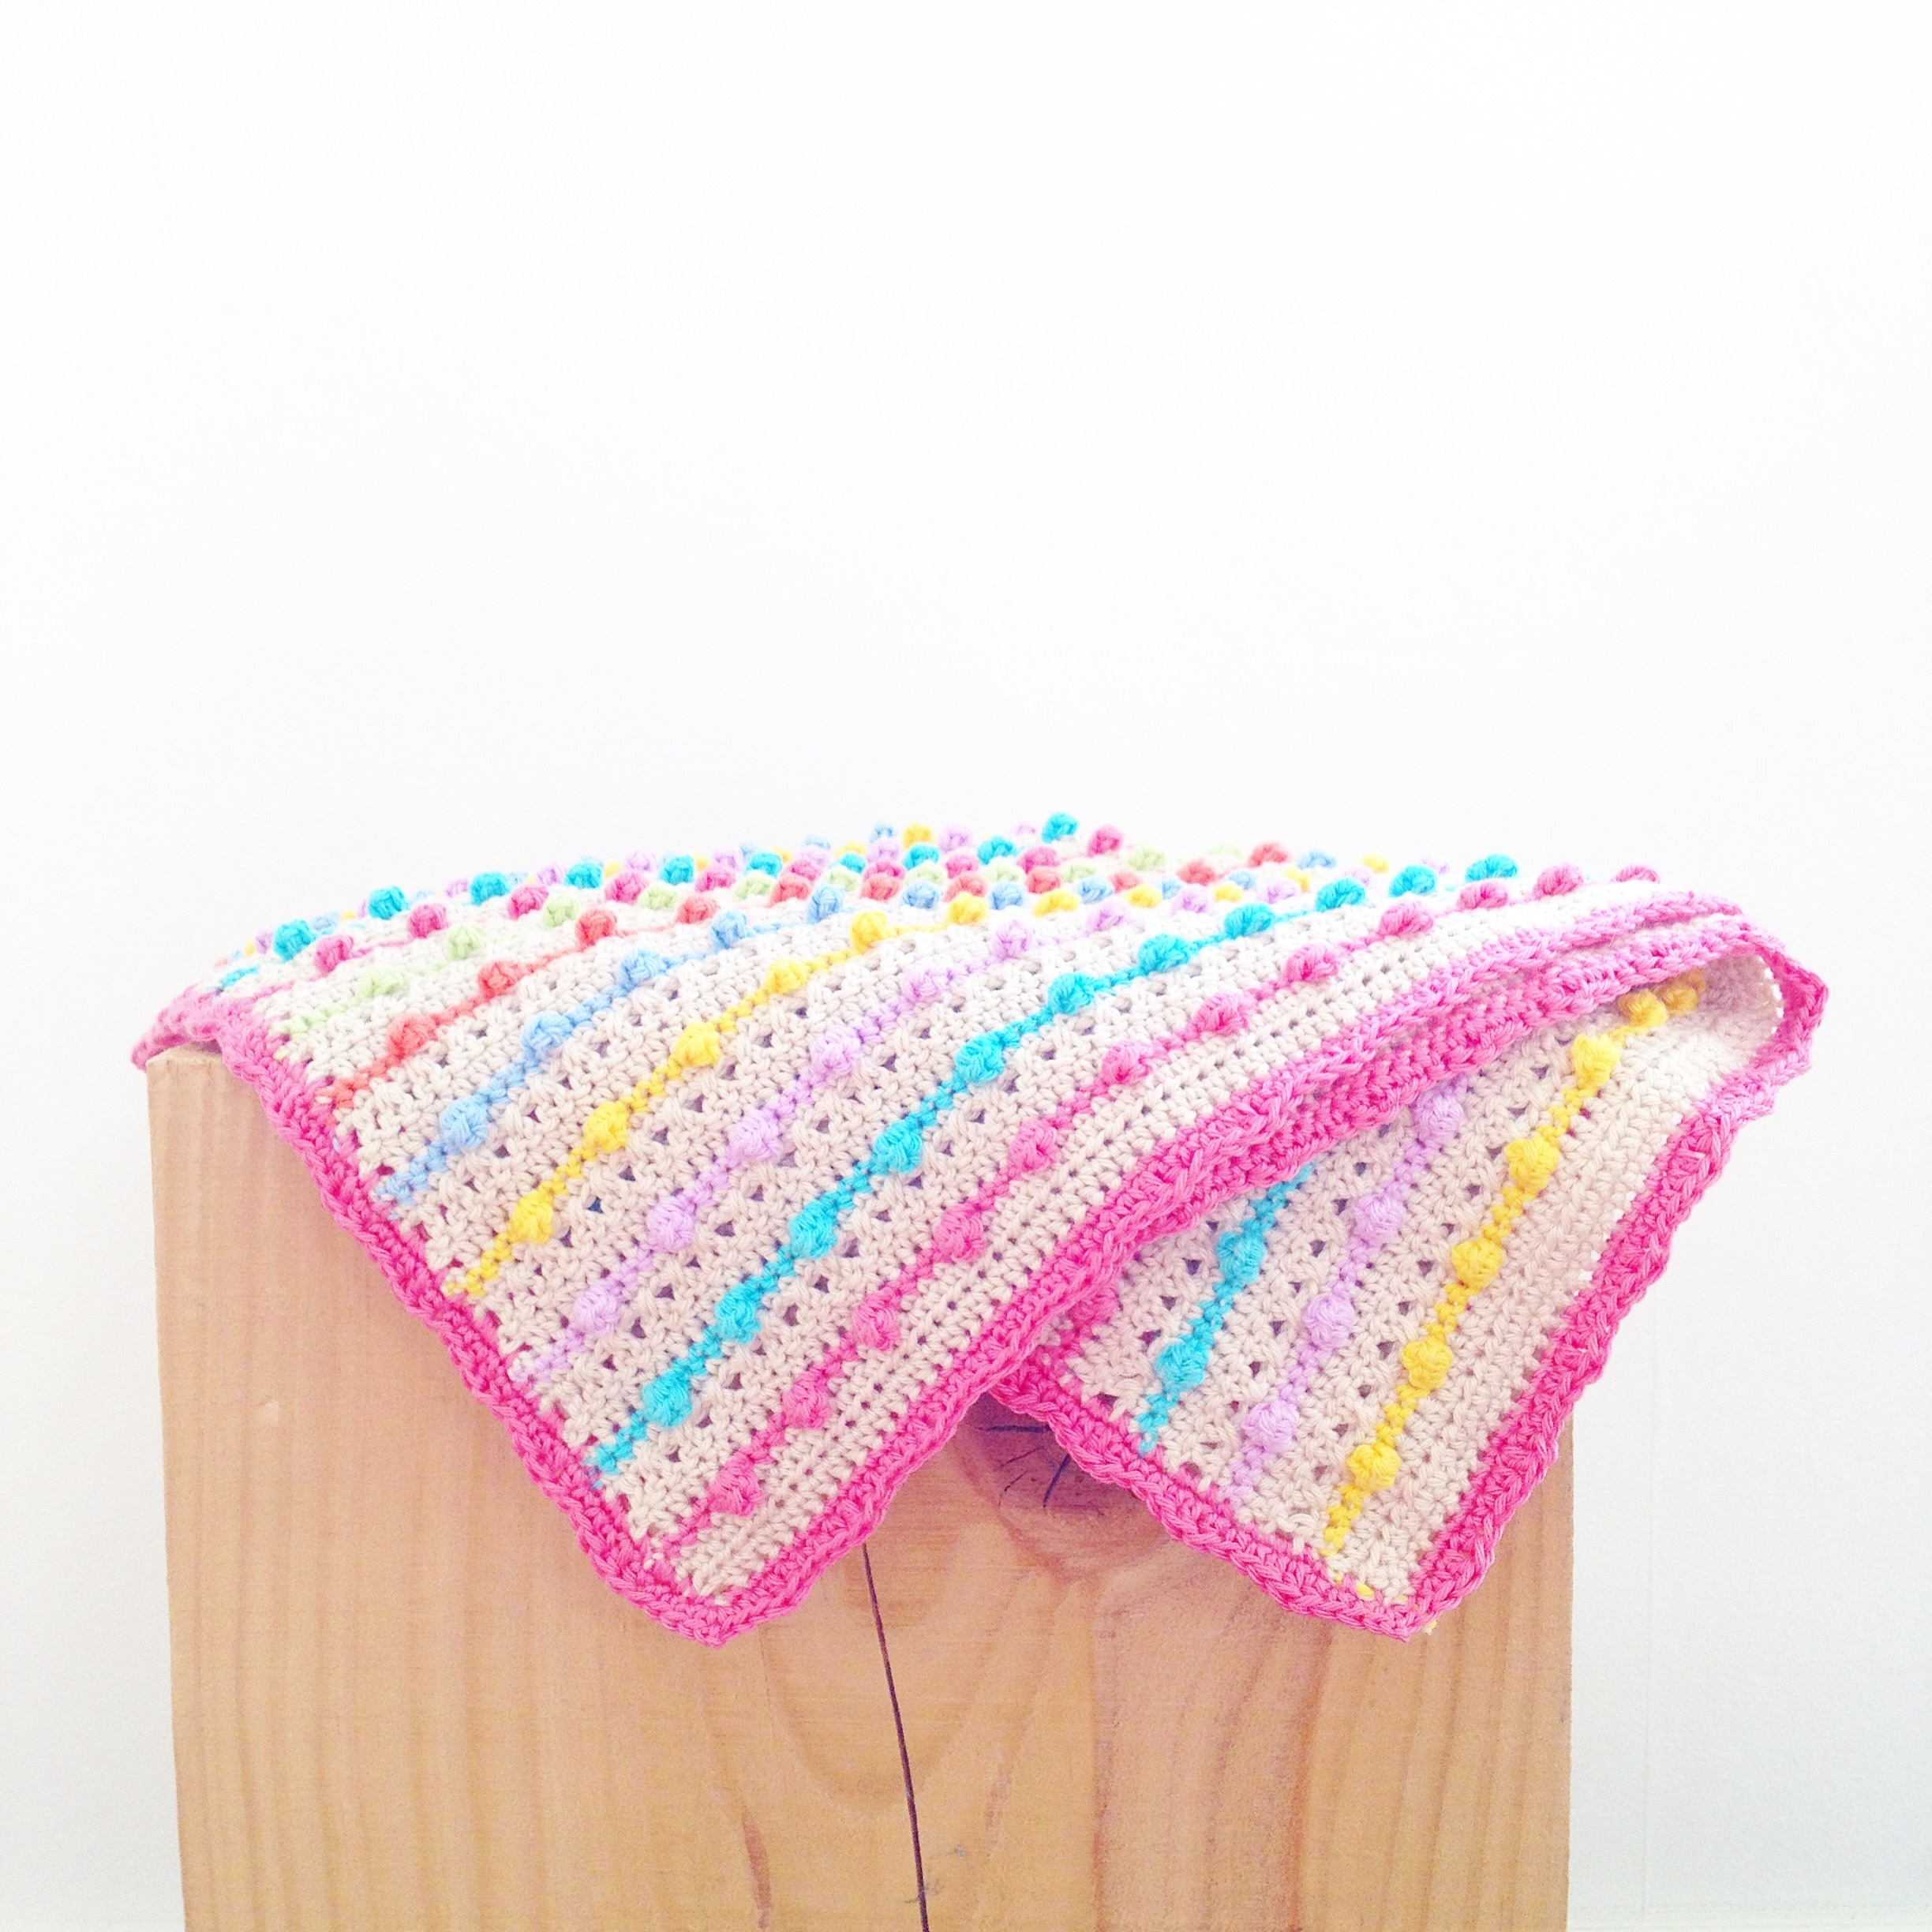 Bobble Stitch Blanket crochet project by Annemarie LoveKnitting